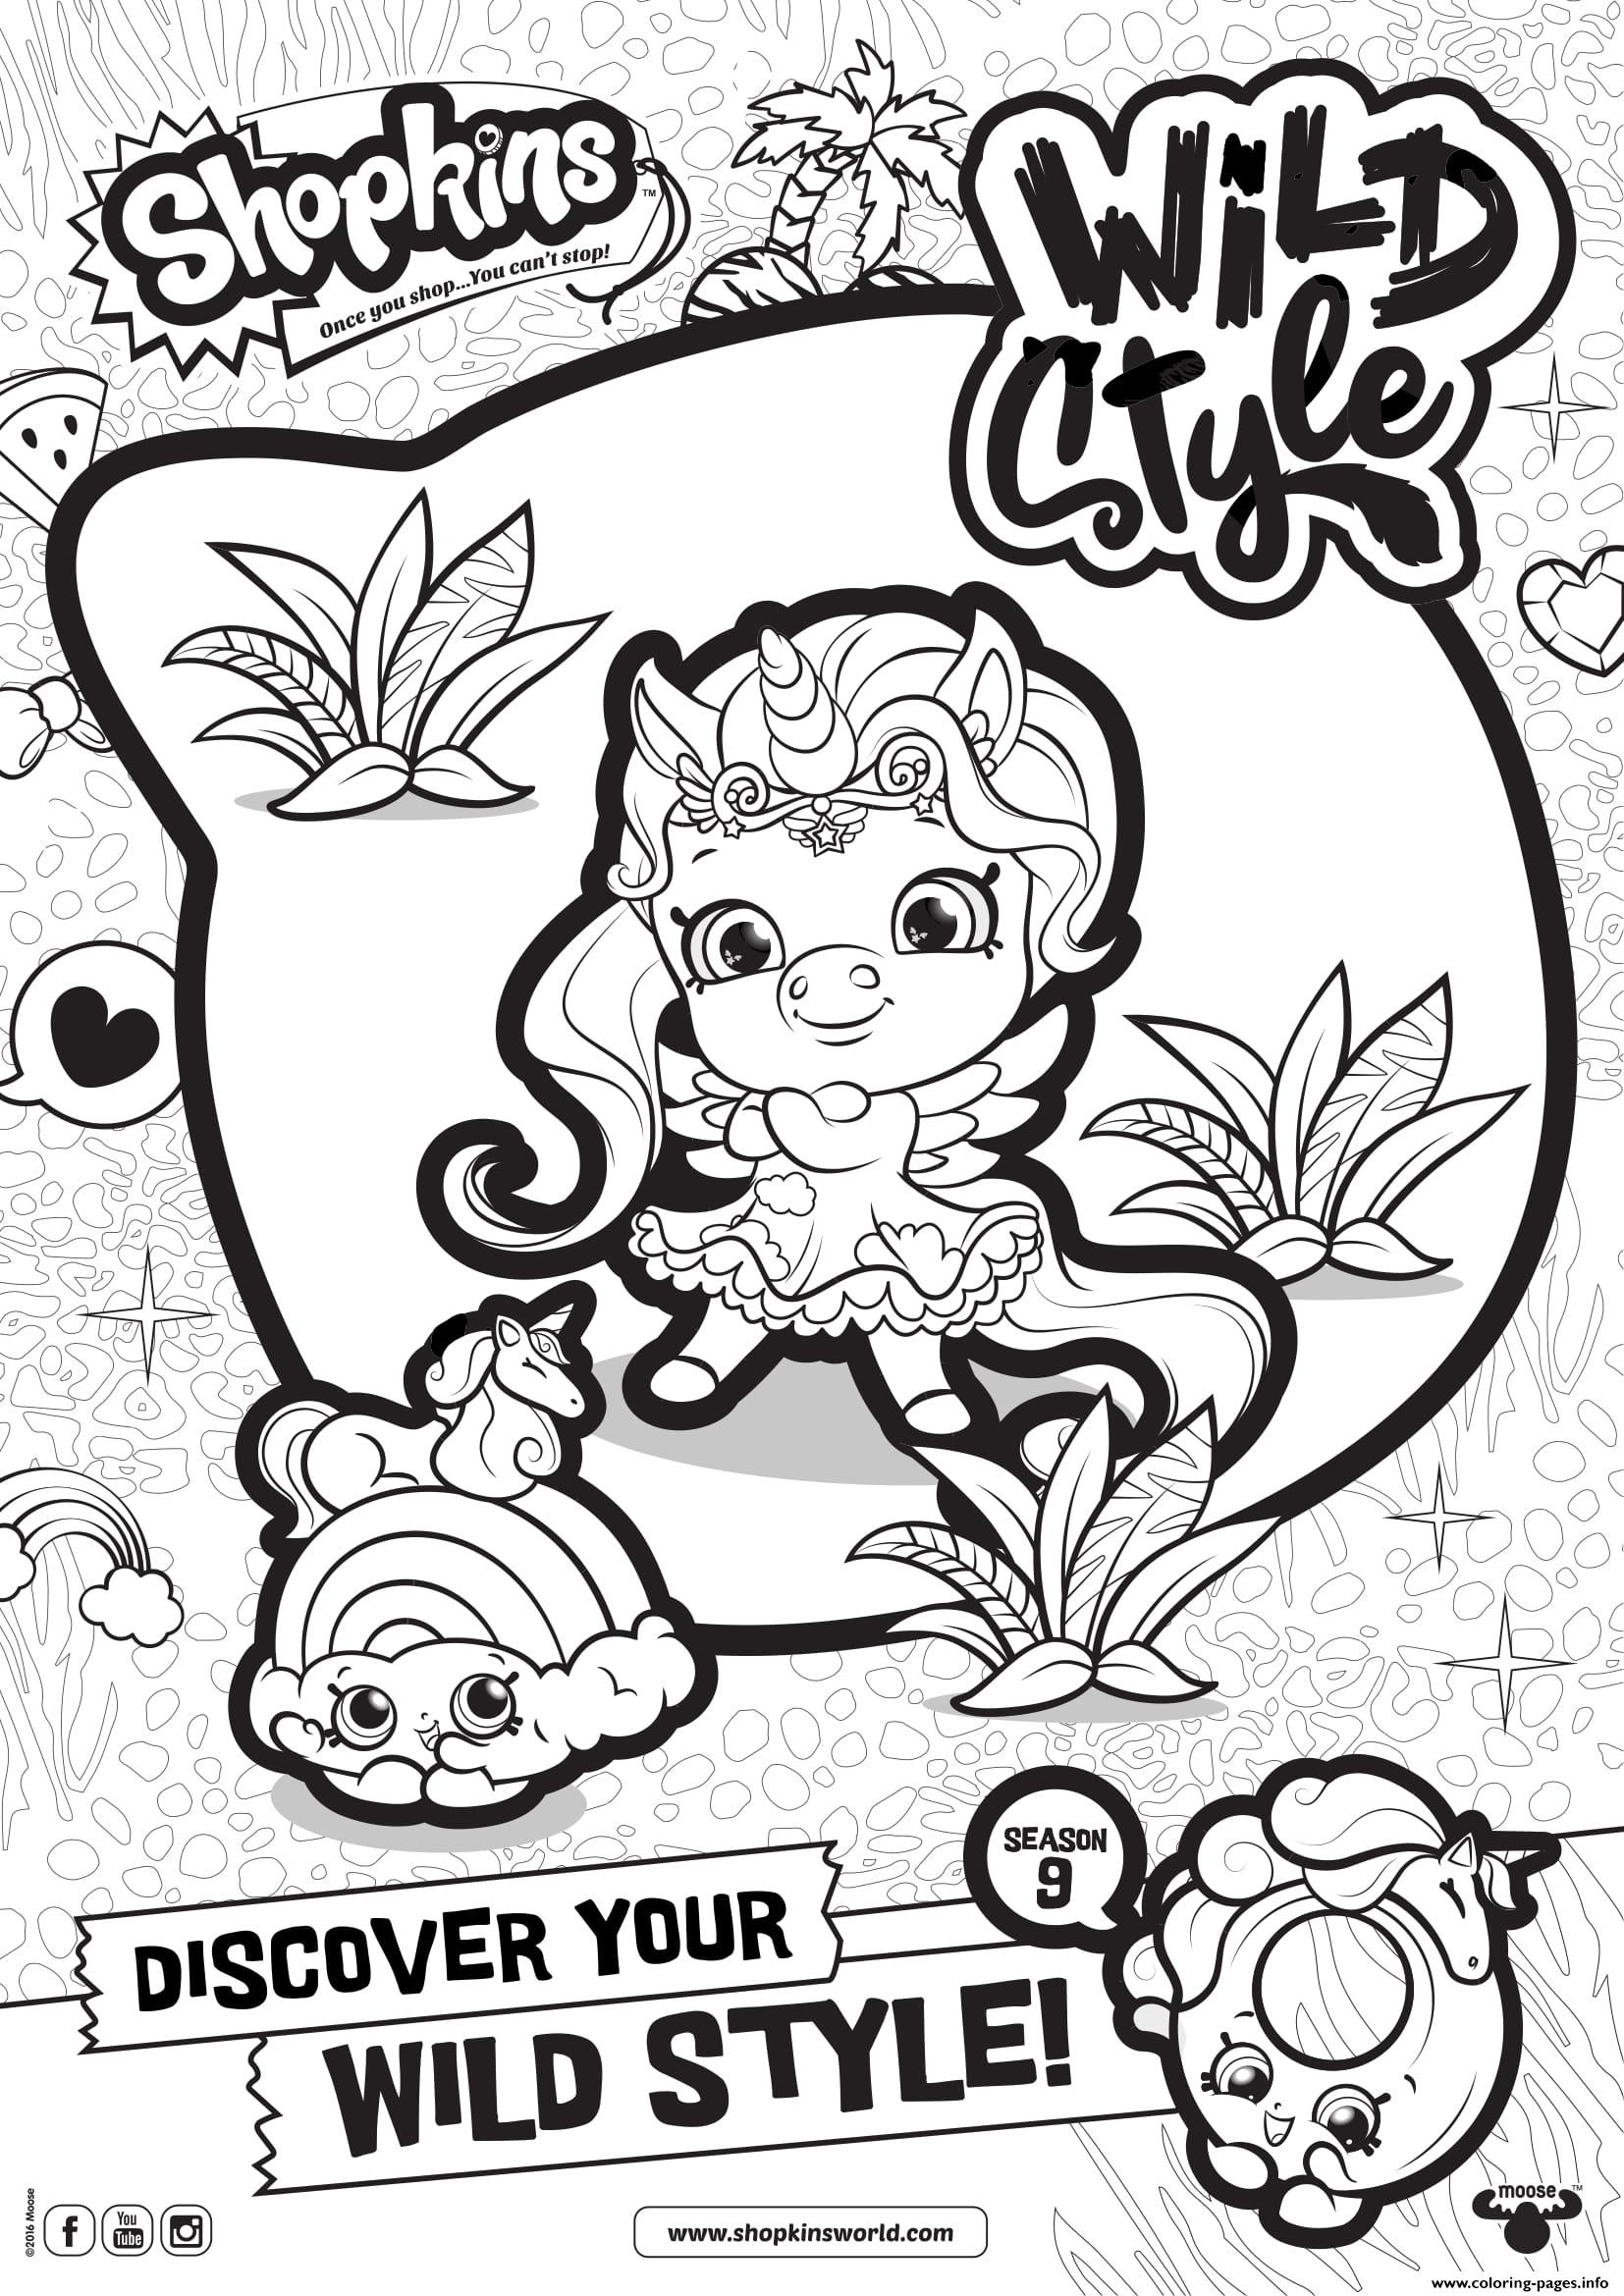 Shopkins Season 9 Wild Style 1 coloring pages